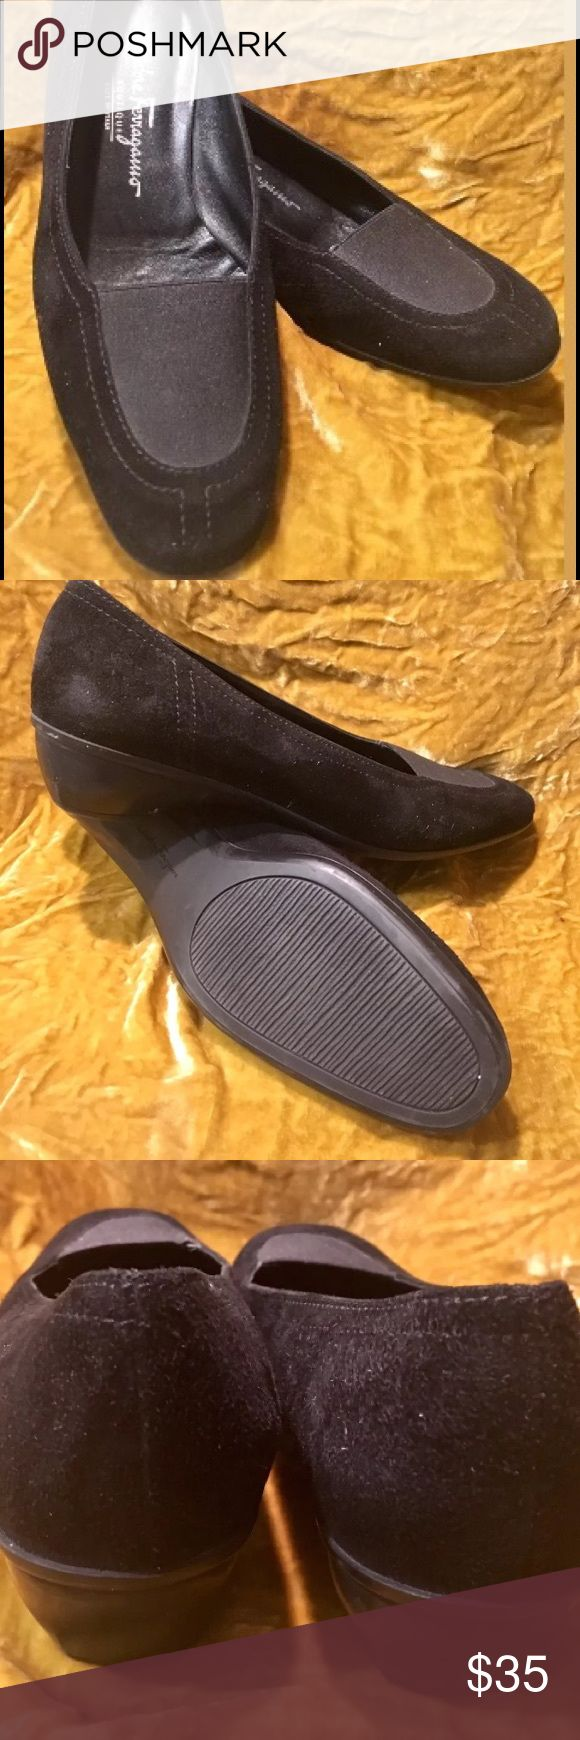 Salvatore Ferragamo Boutique black suede loafers Like new black suede moc split toe loafers by Salvatore Ferragamo Boutique. Made in Italy. Women's size 8 1/2 Salvatore Ferragamo Shoes Flats & Loafers